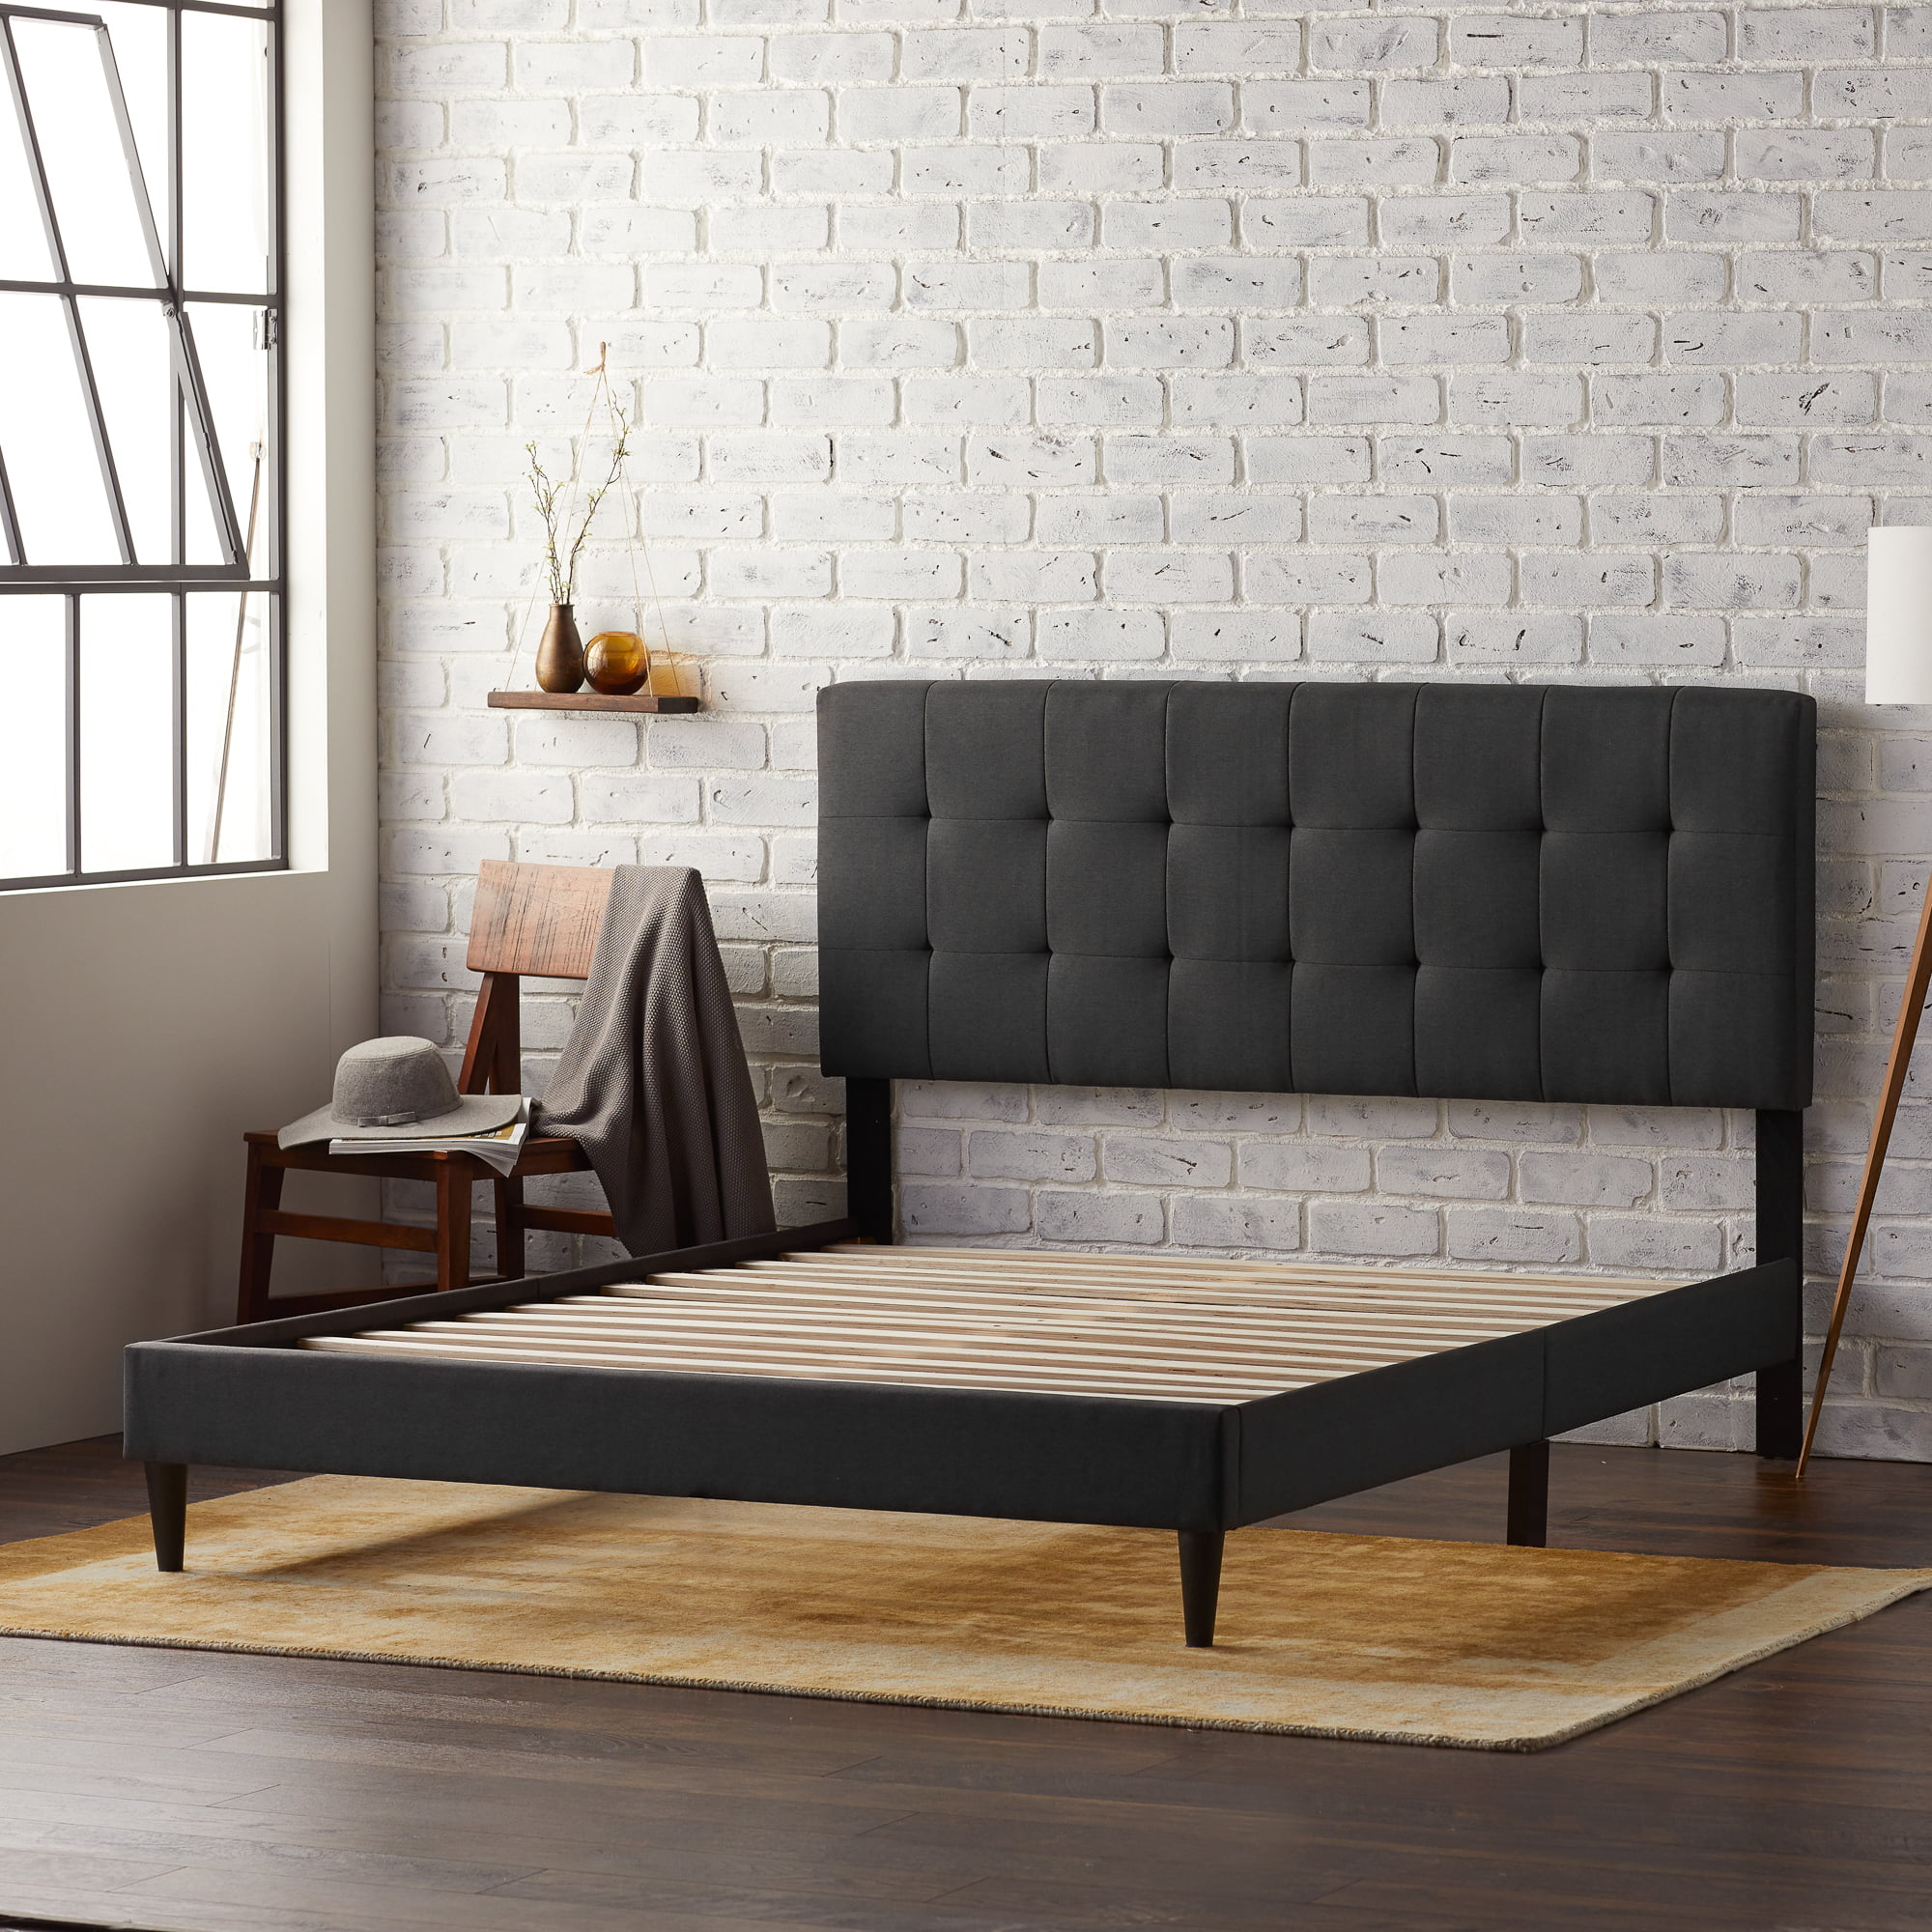 Picture of: Rest Haven Upholstered Platform Bed Frame With Square Tufted Headboard Queen Charcoal Walmart Com Walmart Com